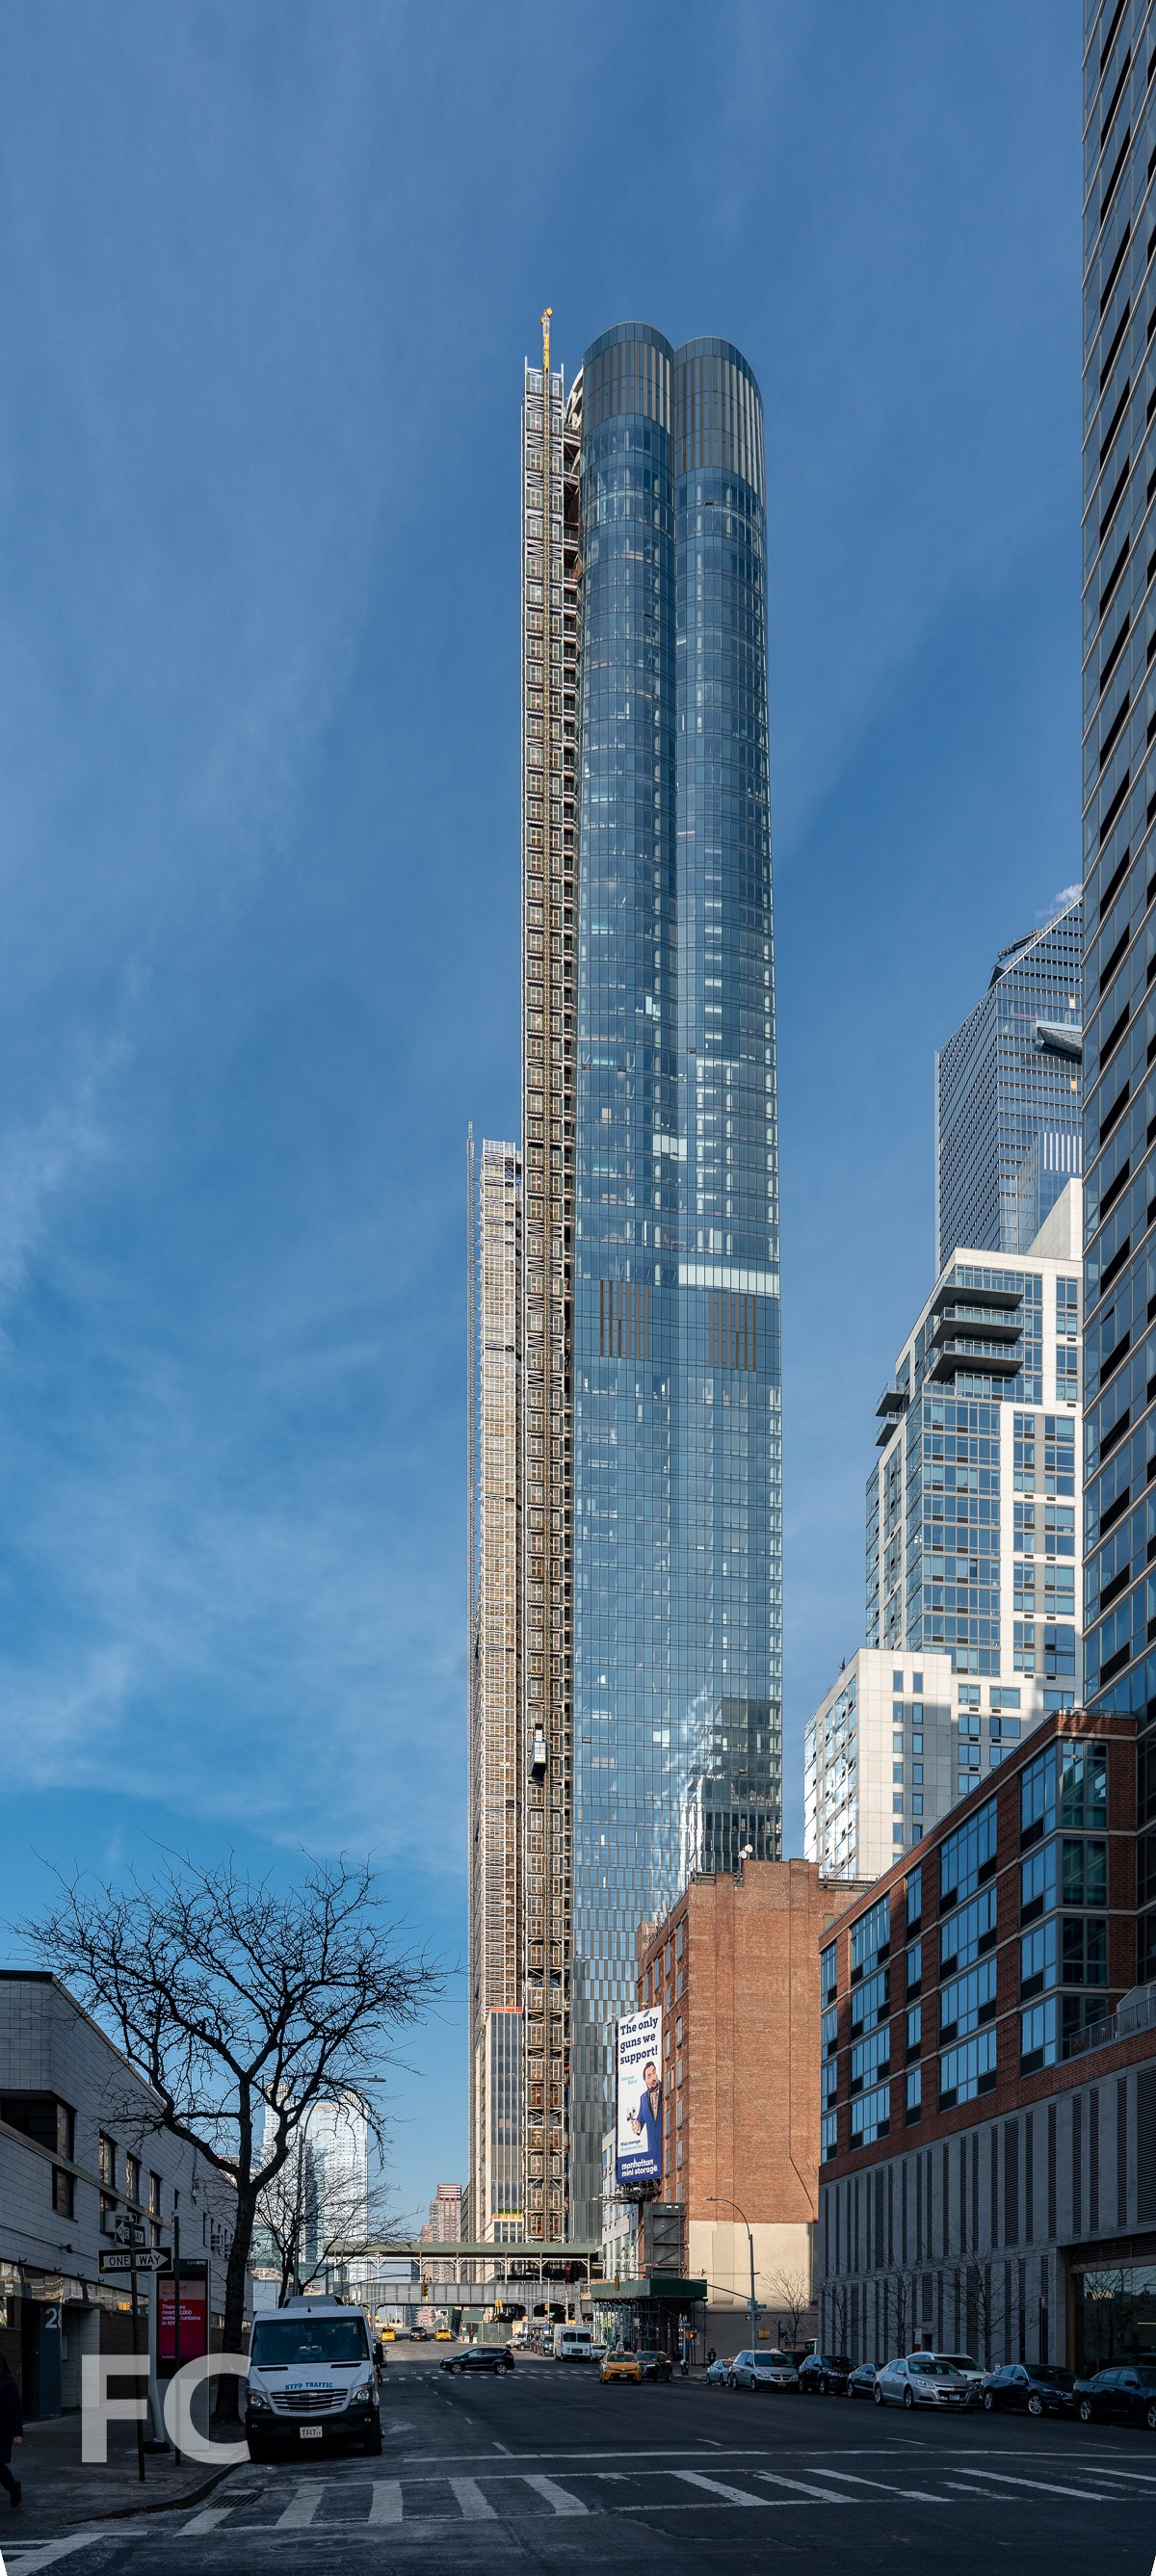 South facade of 15 Hudson Yards from 11th Avenue.